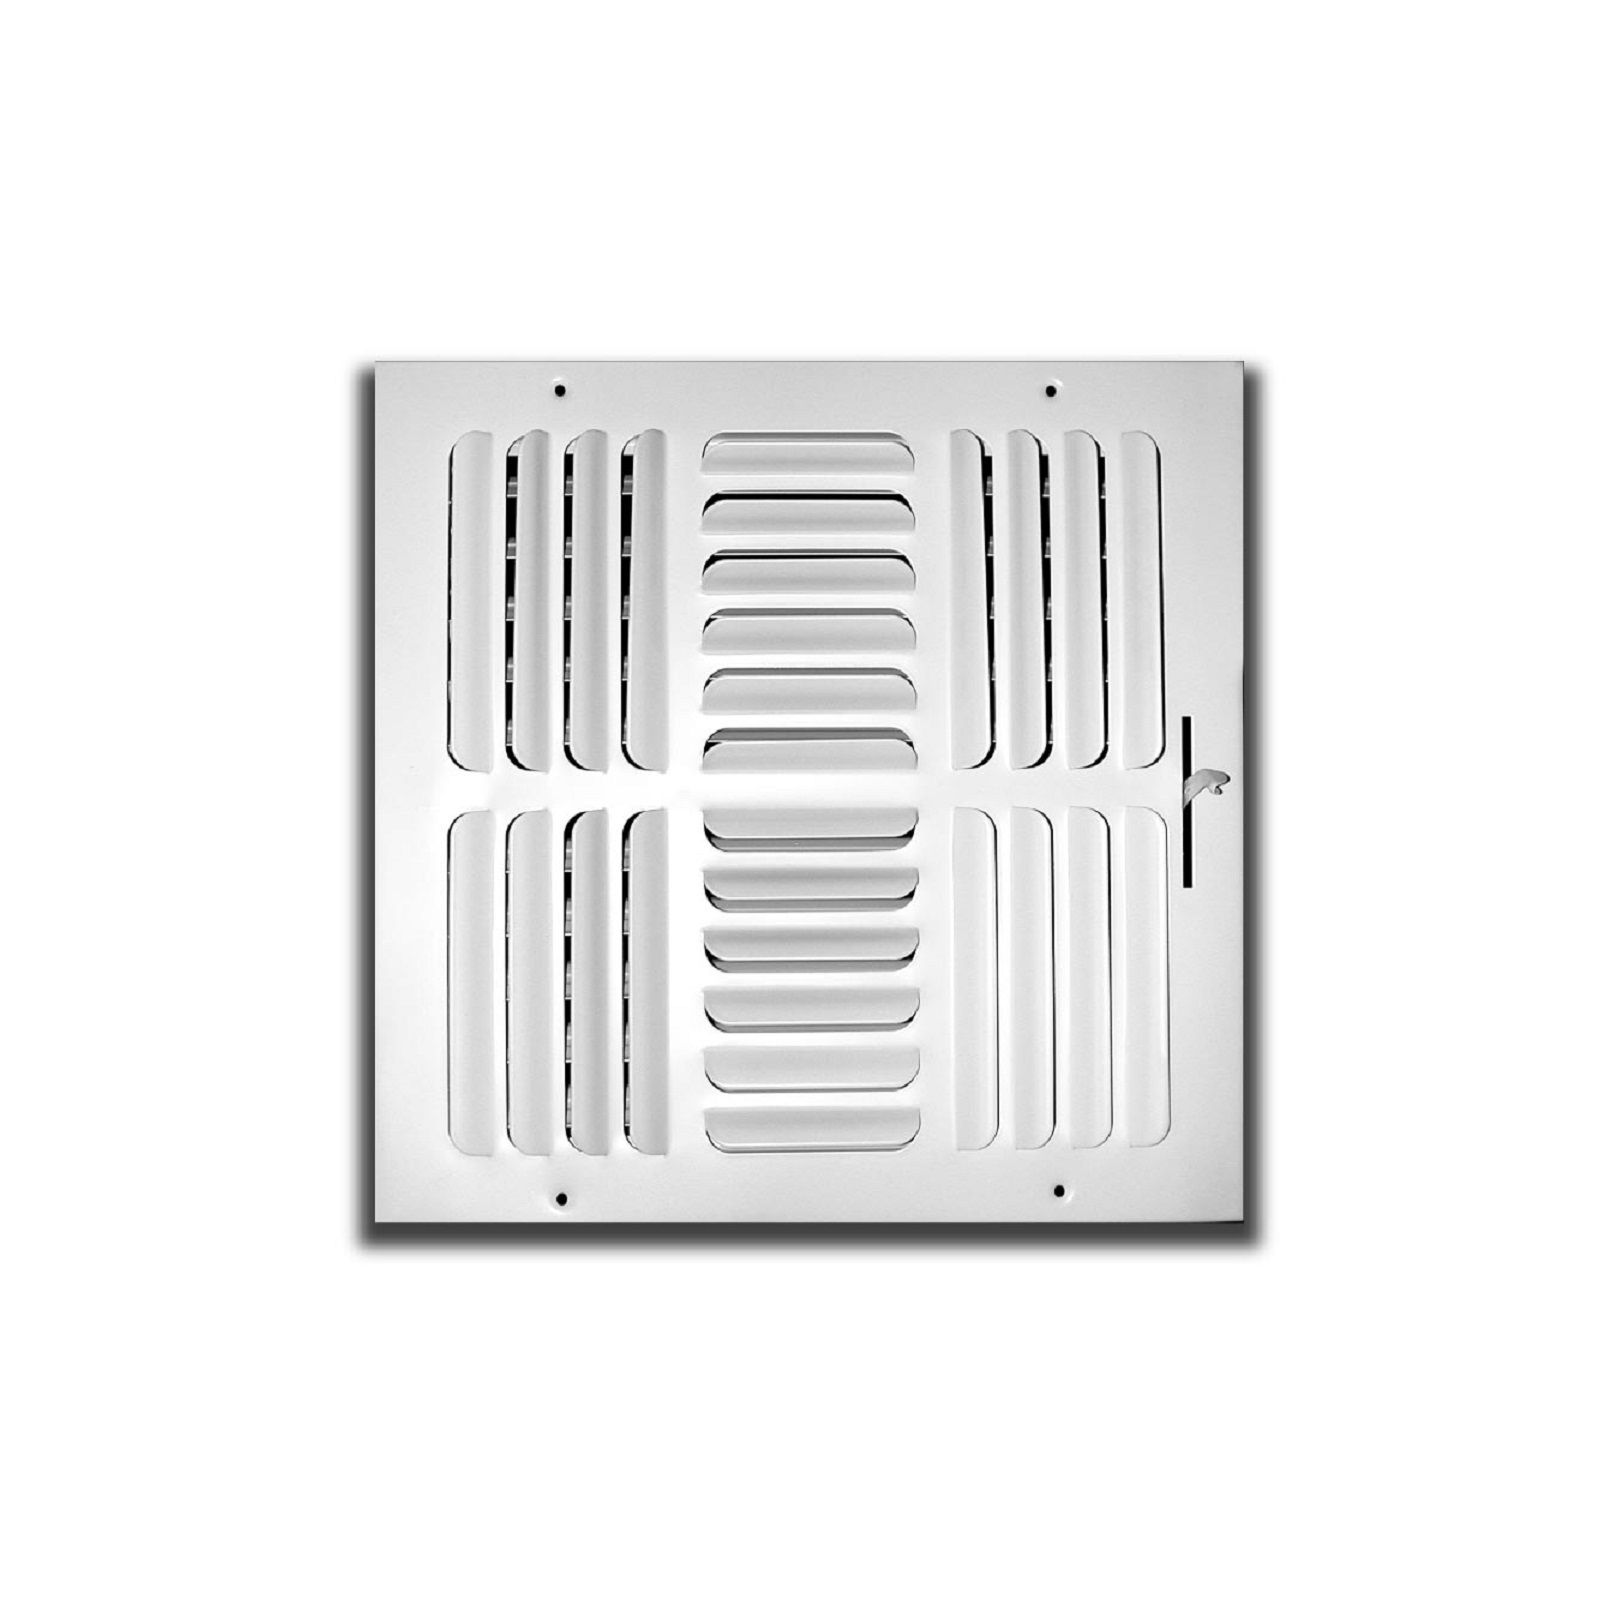 "TRUaire 404M 12X12 - Fixed Curved Blade Wall/Ceiling Register With Multi Shutter Damper, 4-Way, White, 12"" X 12"""